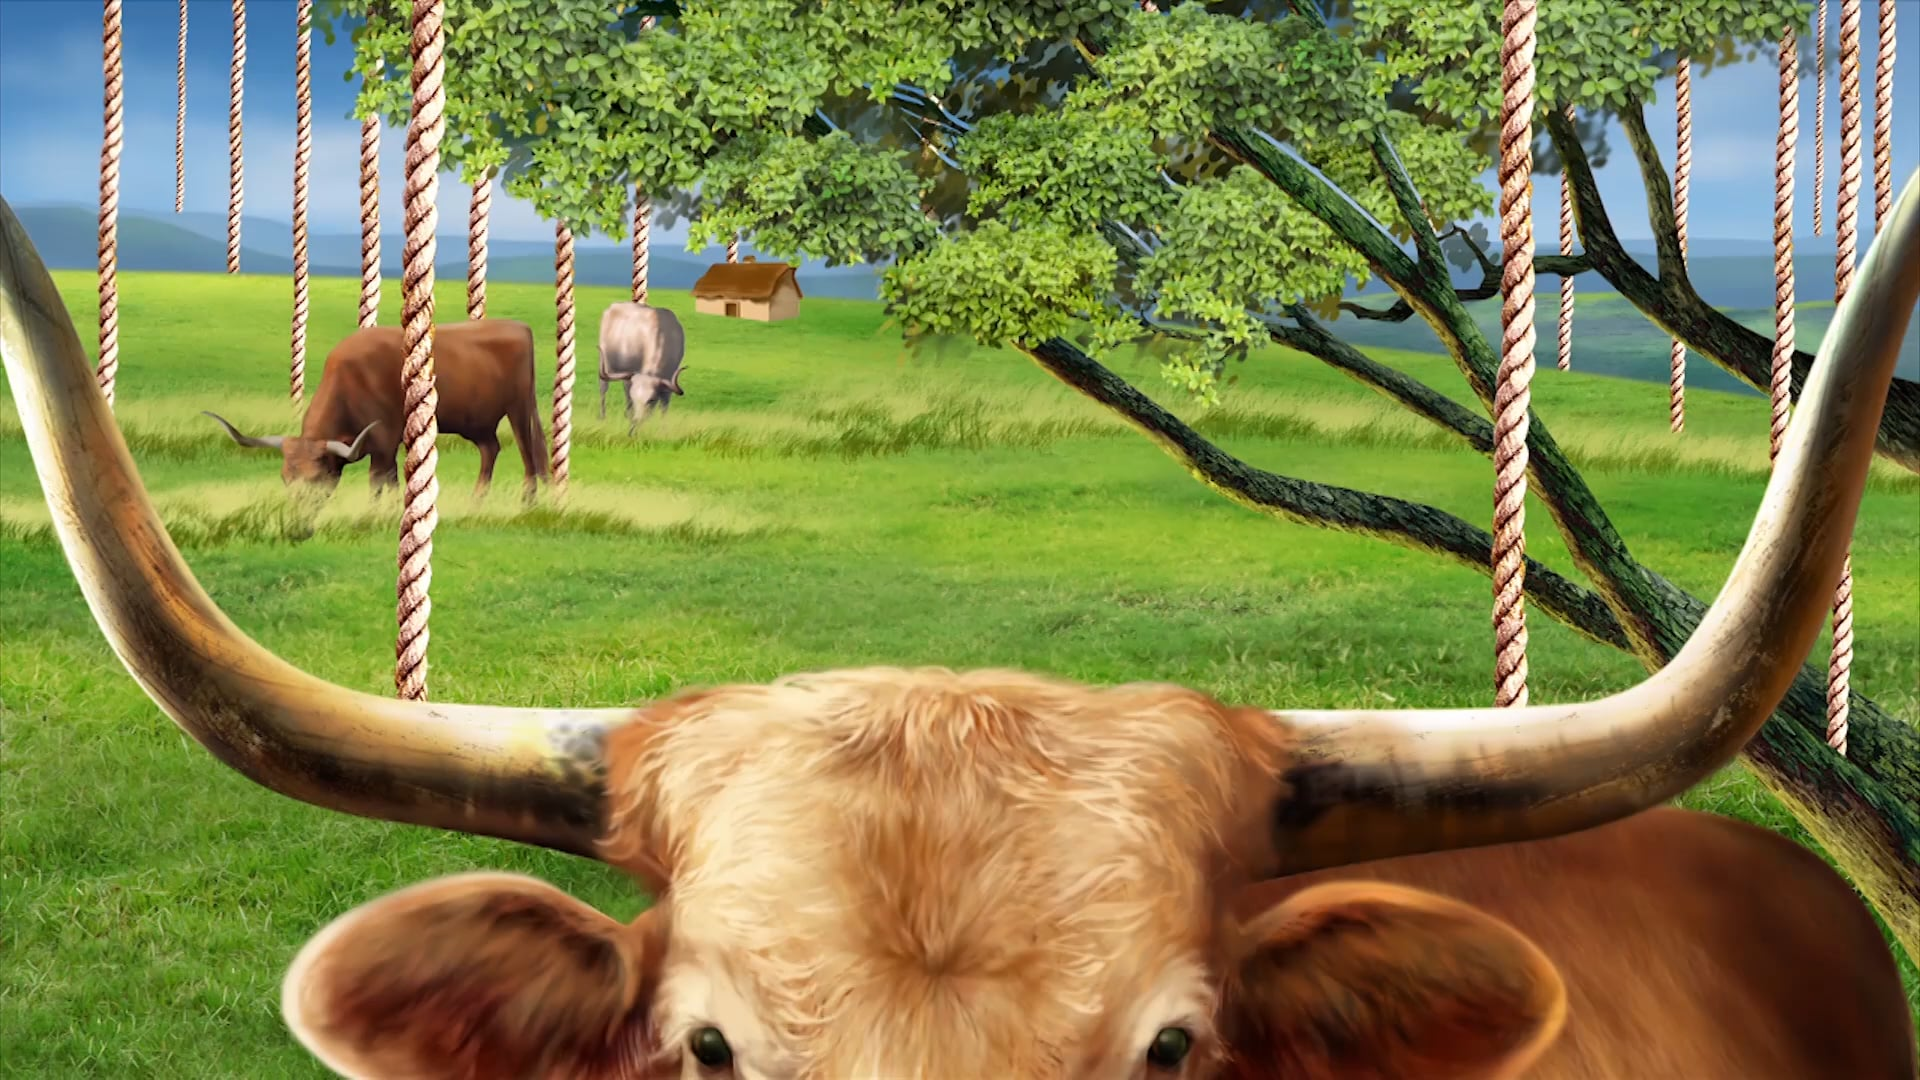 Cows - Animation